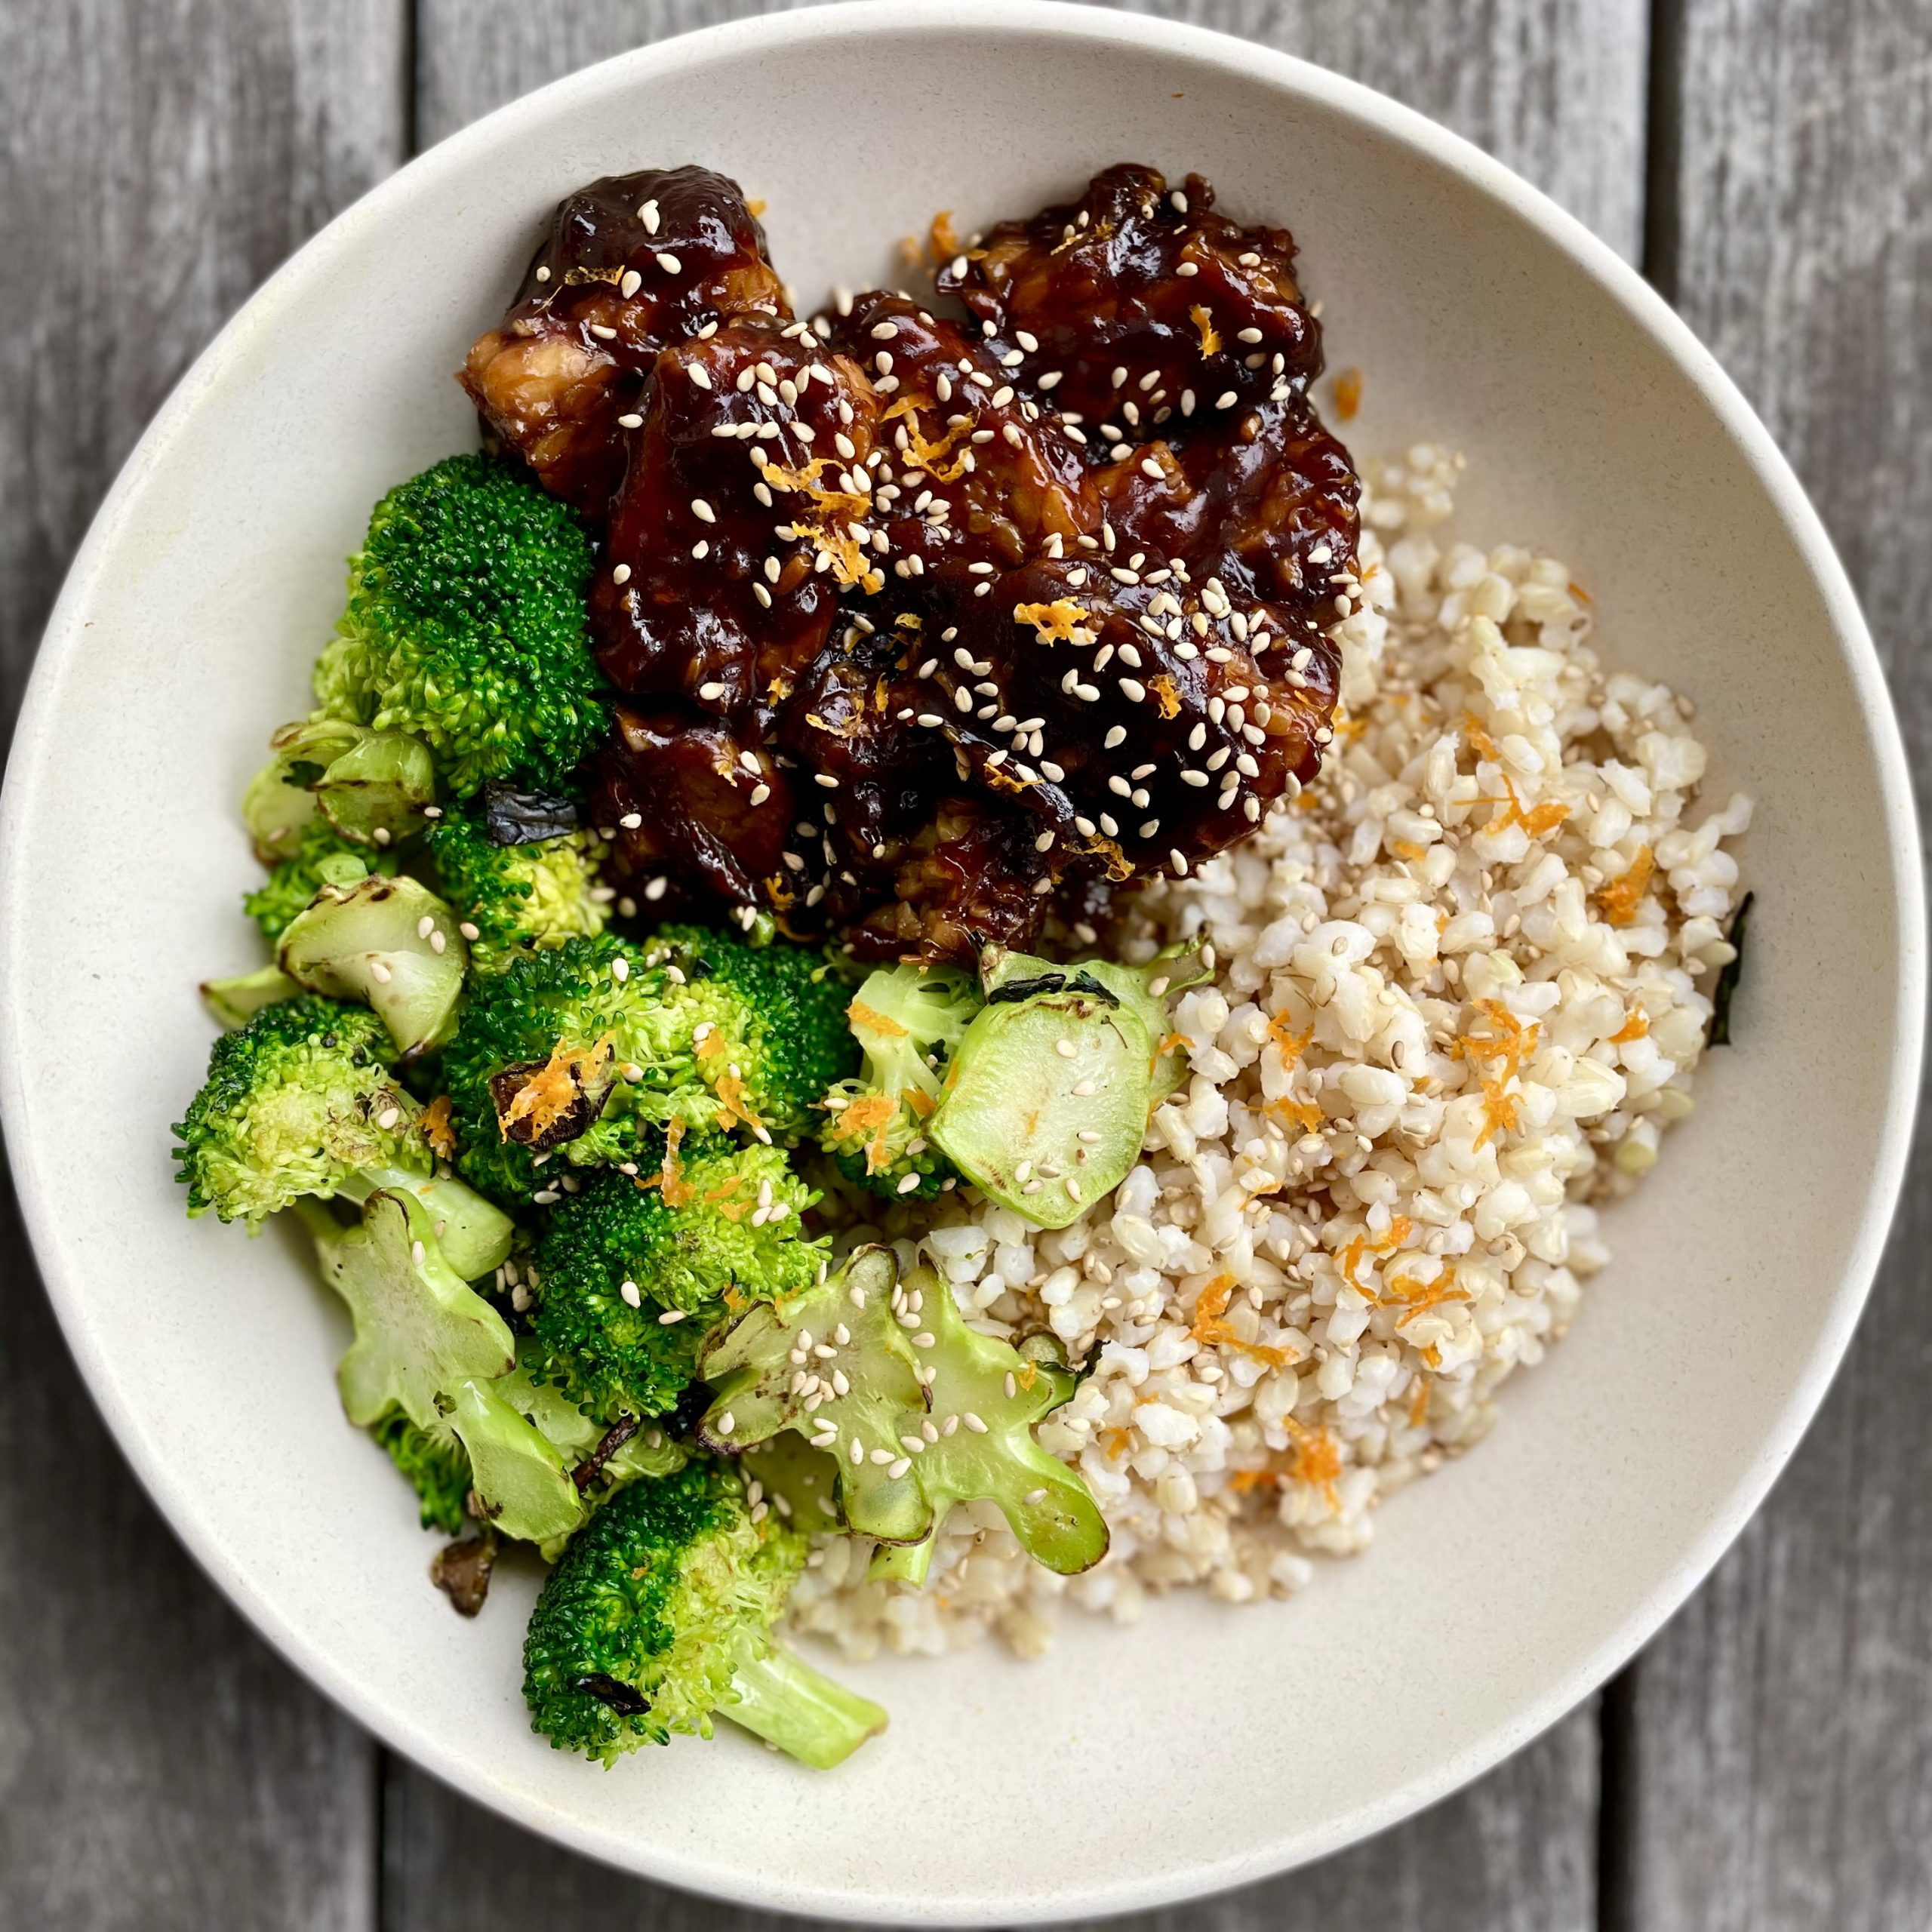 general tso's-inspired tempeh with broccoli florets & stems